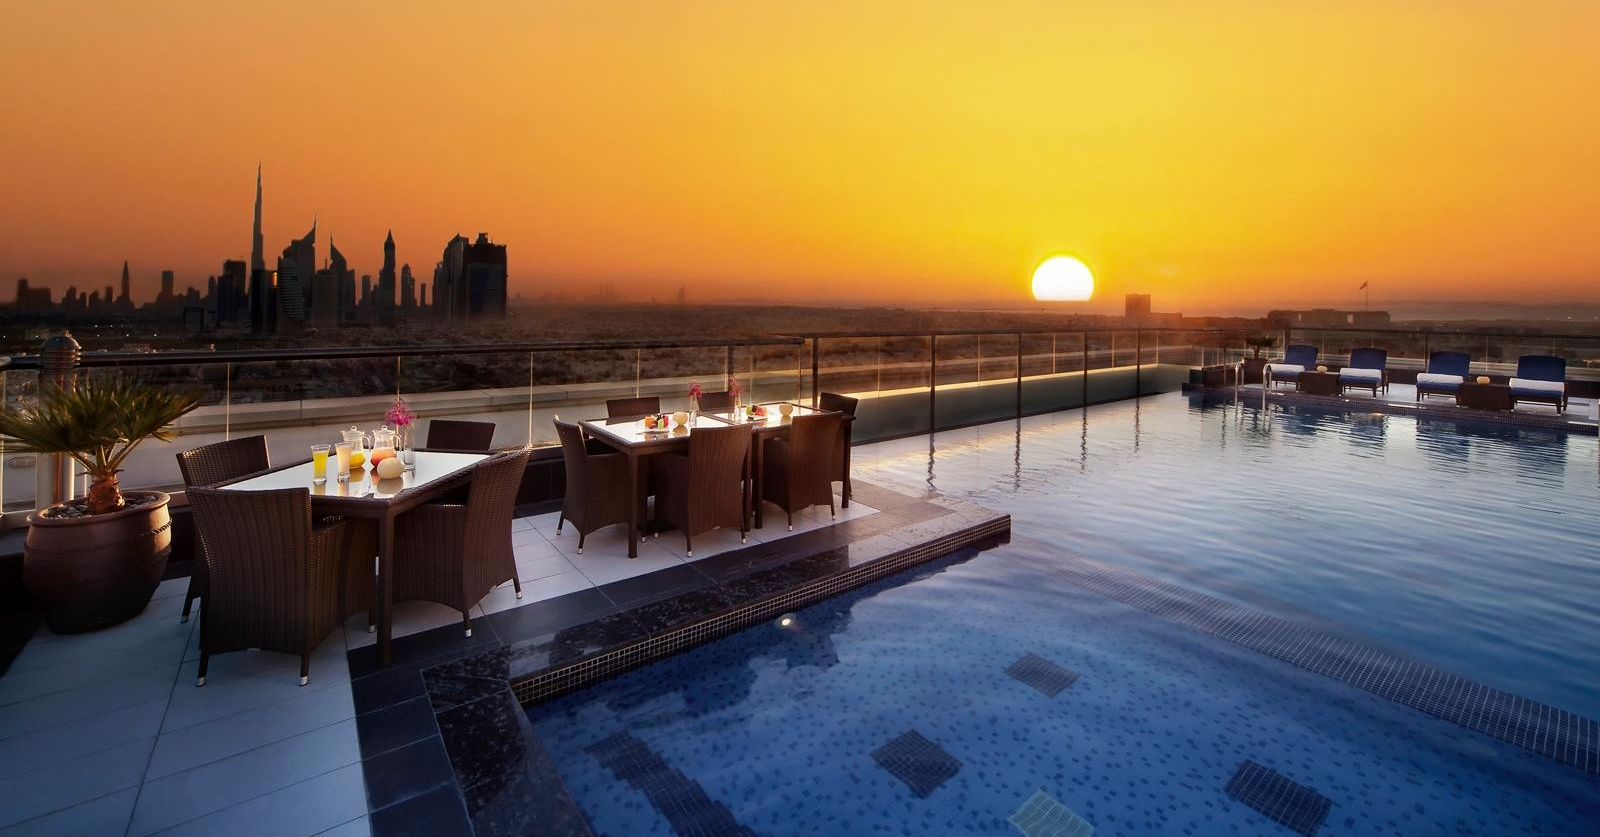 rooftop-pools-in-dubai-swimming-in-dubai-dssdssswessd Cropped